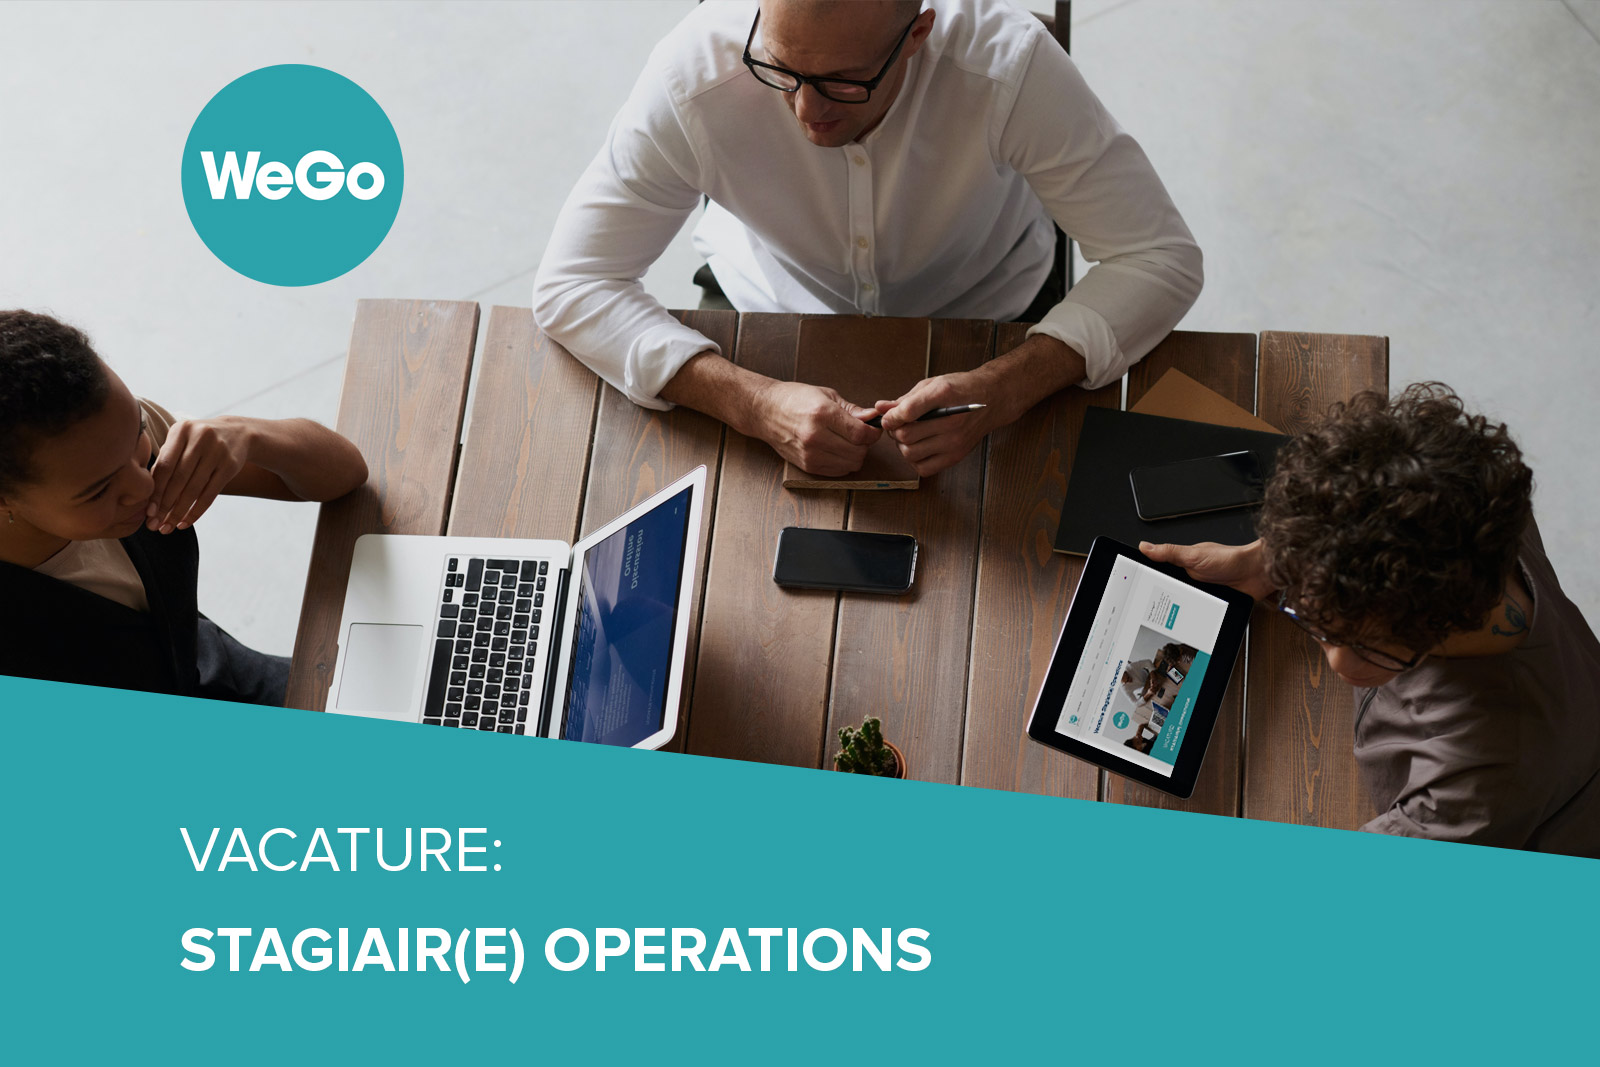 Vacature WeGo Stagiair(e) Operations